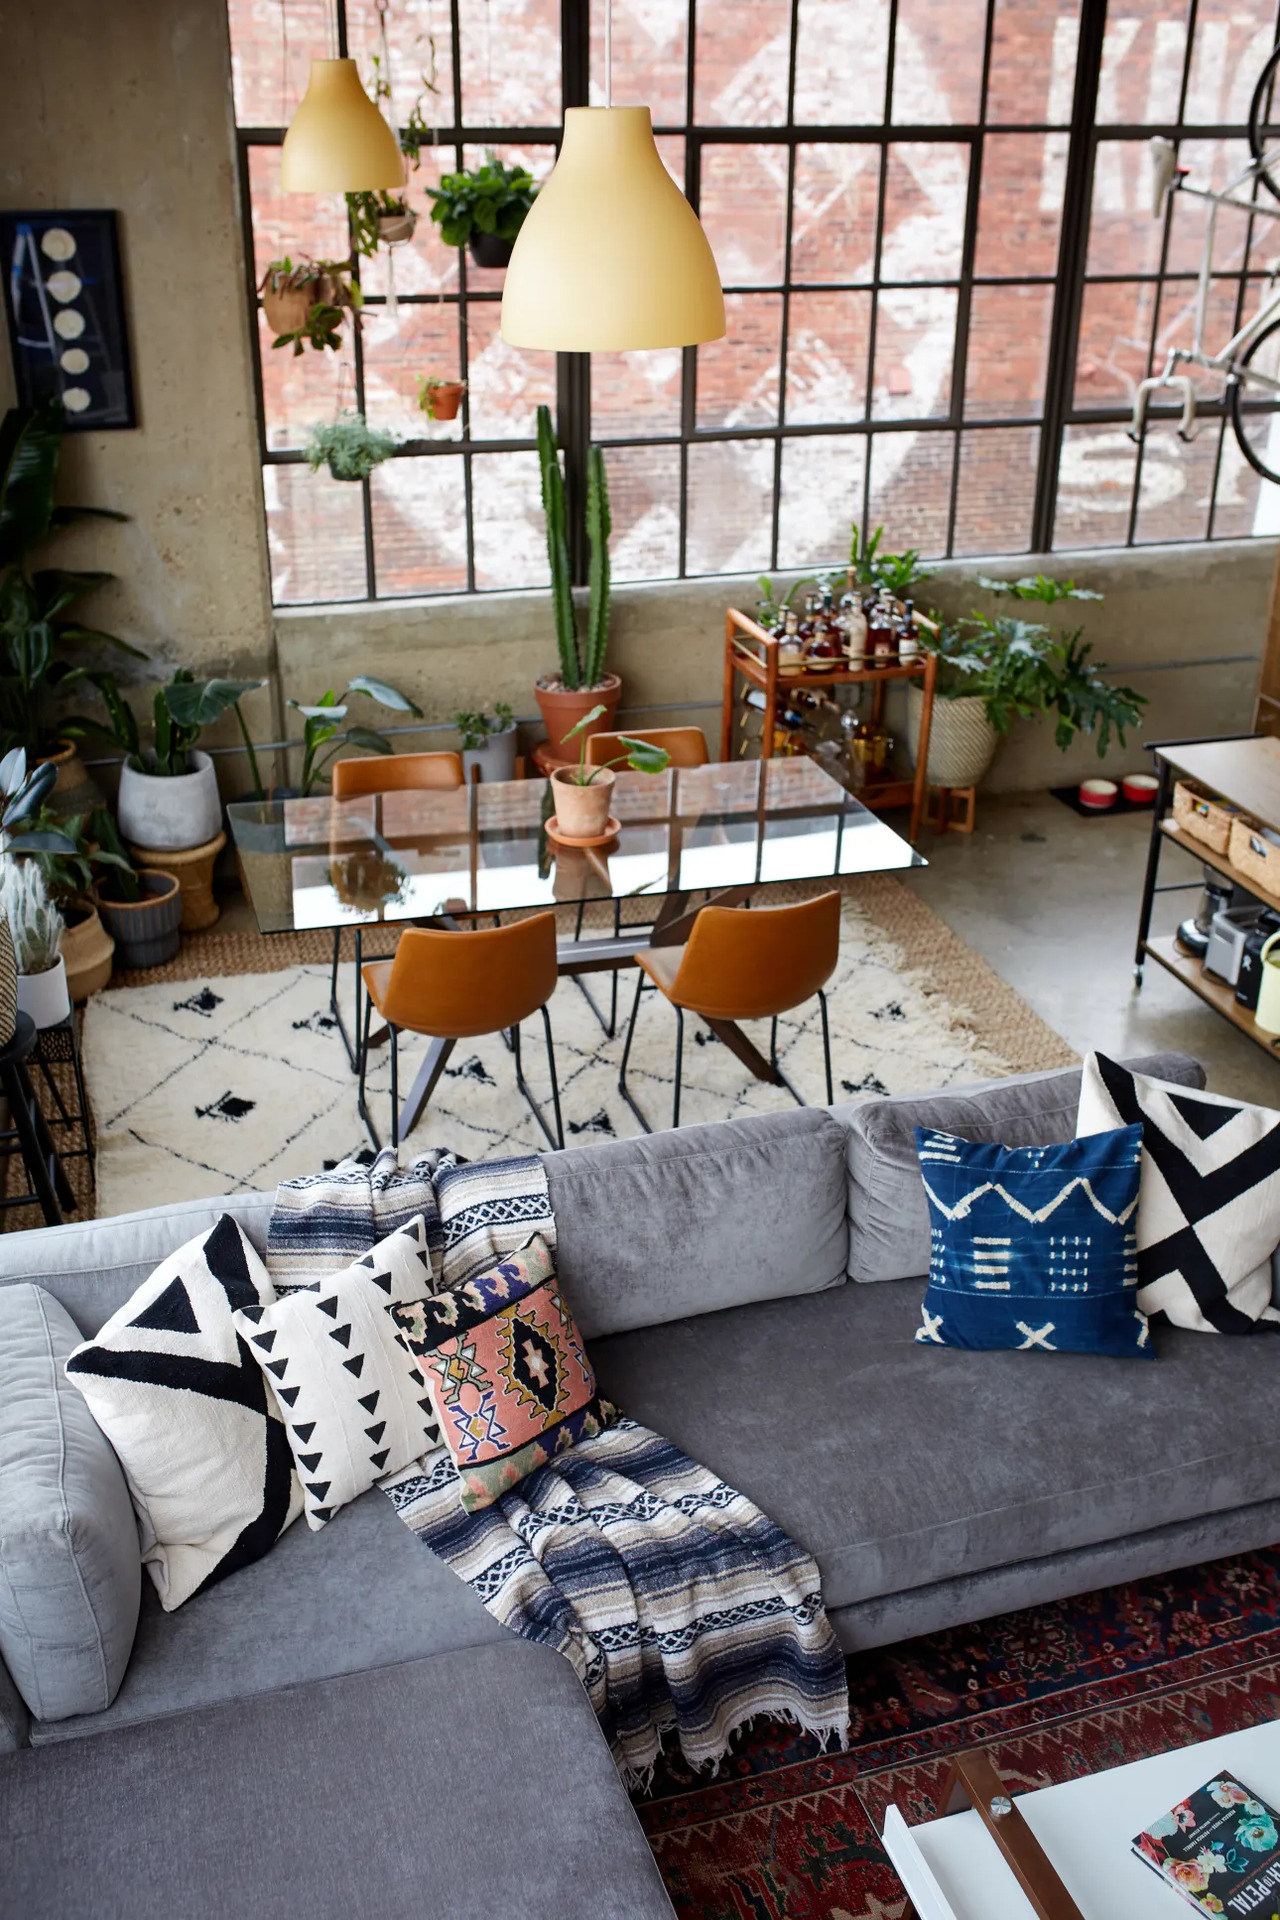 A cool industrial apartment - Daily Dream Decor